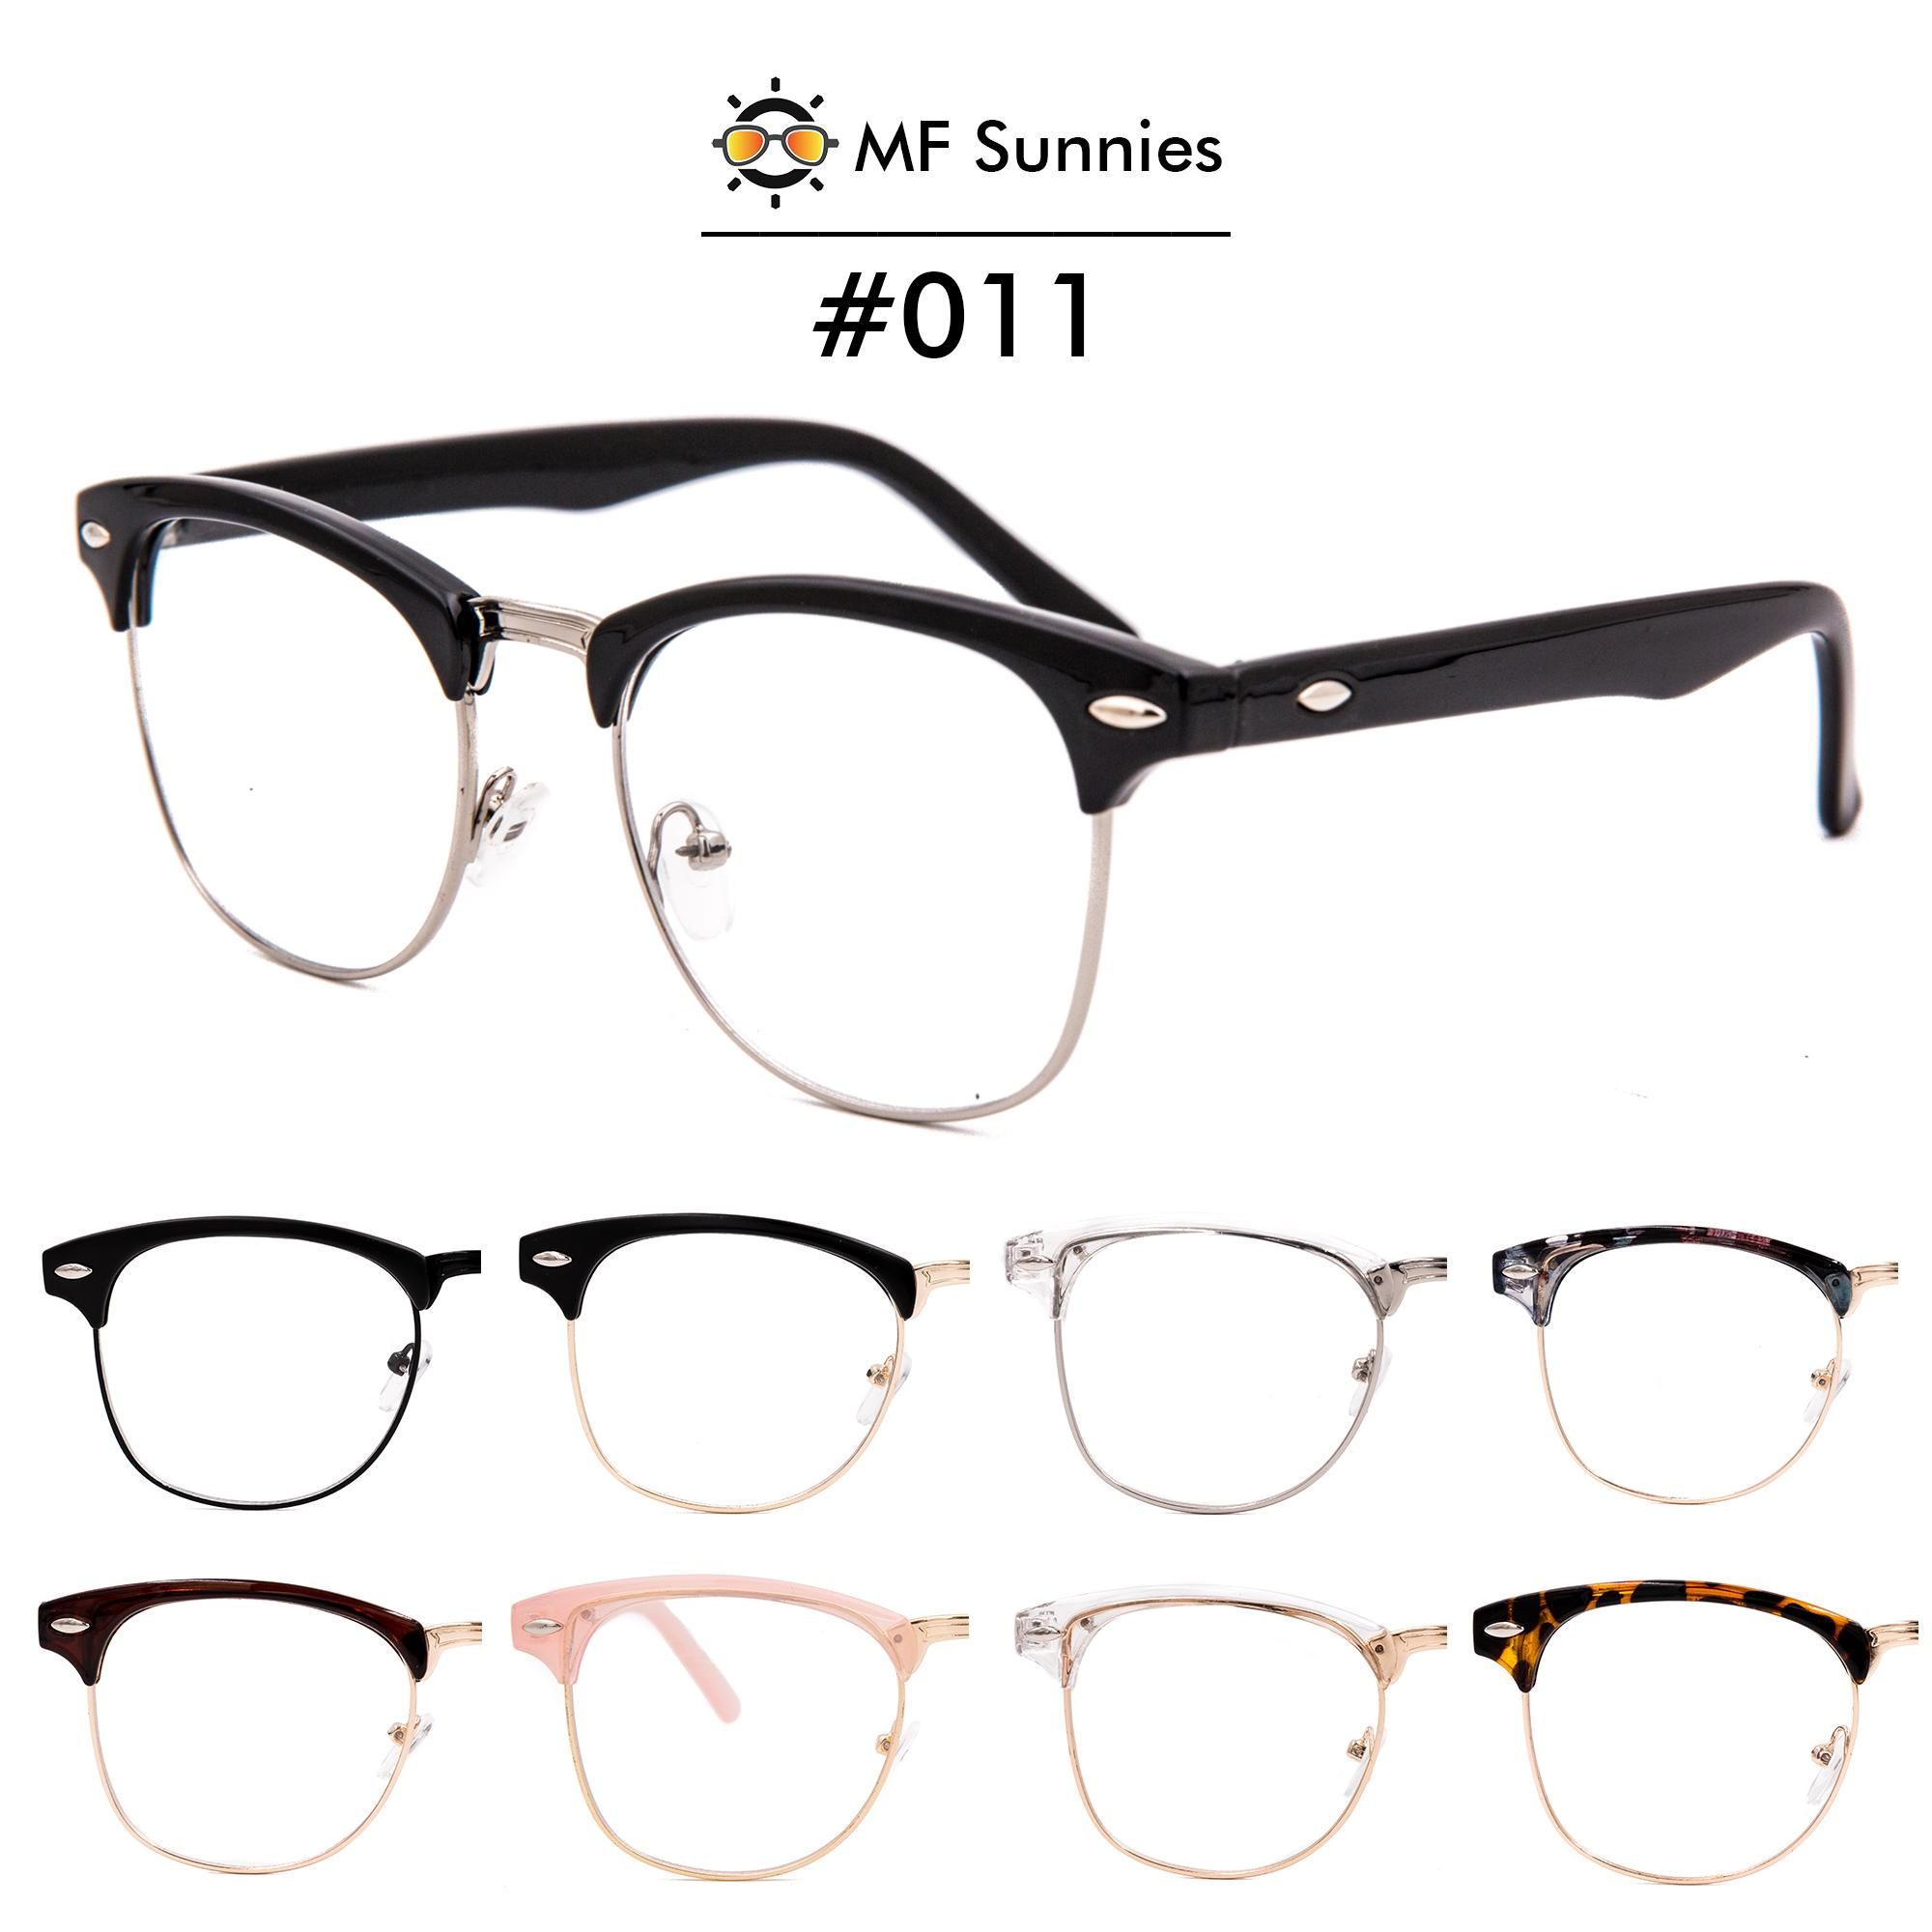 a31d15fee96 63745 items found in Eyeglasses. MFSunnies Clubmaster Computer Anti  Radiation Blue light Classic Metal Hinges High quality acetate frame